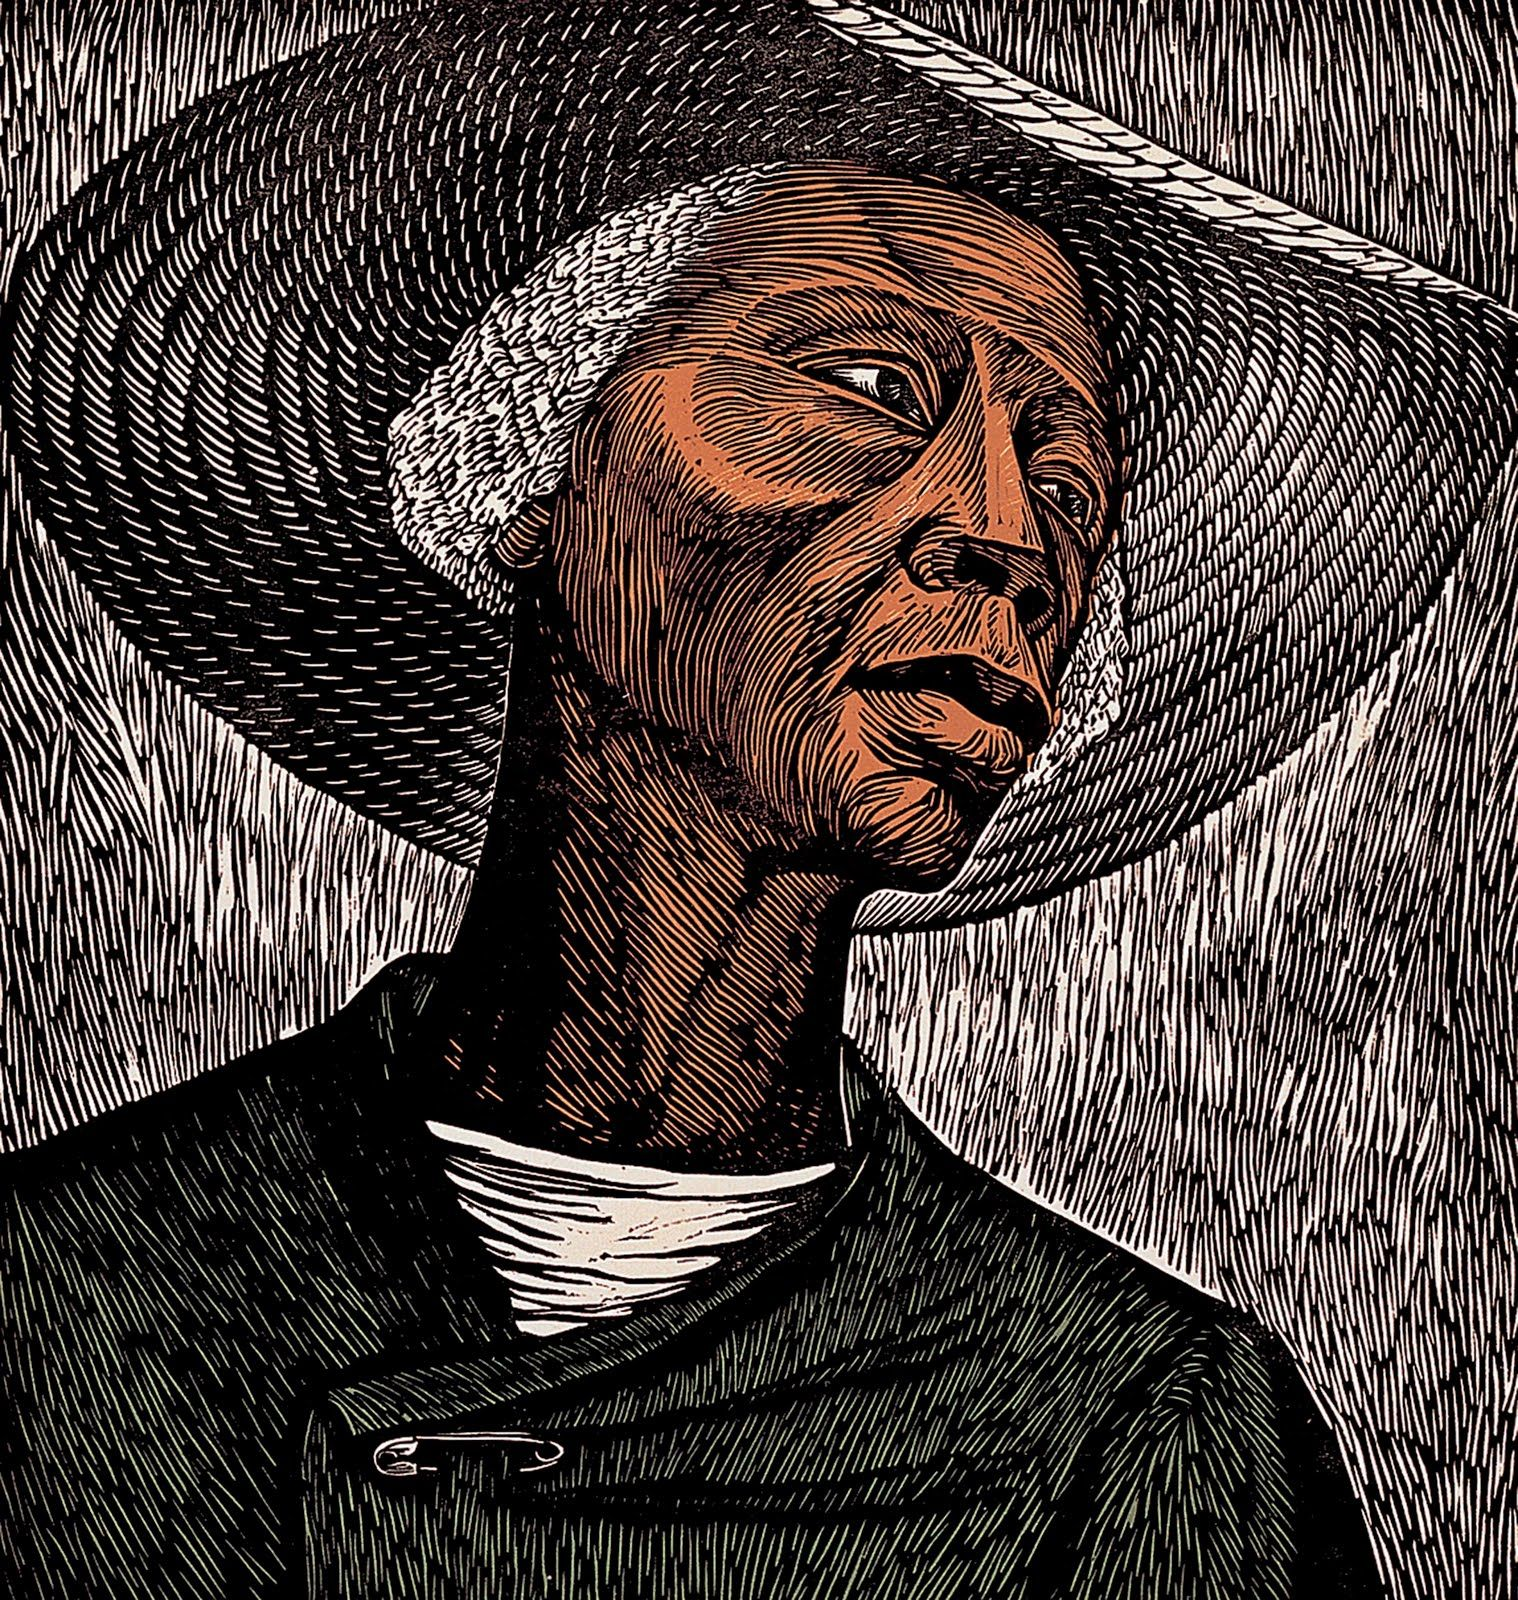 A woman revered as one of the top black artists of the